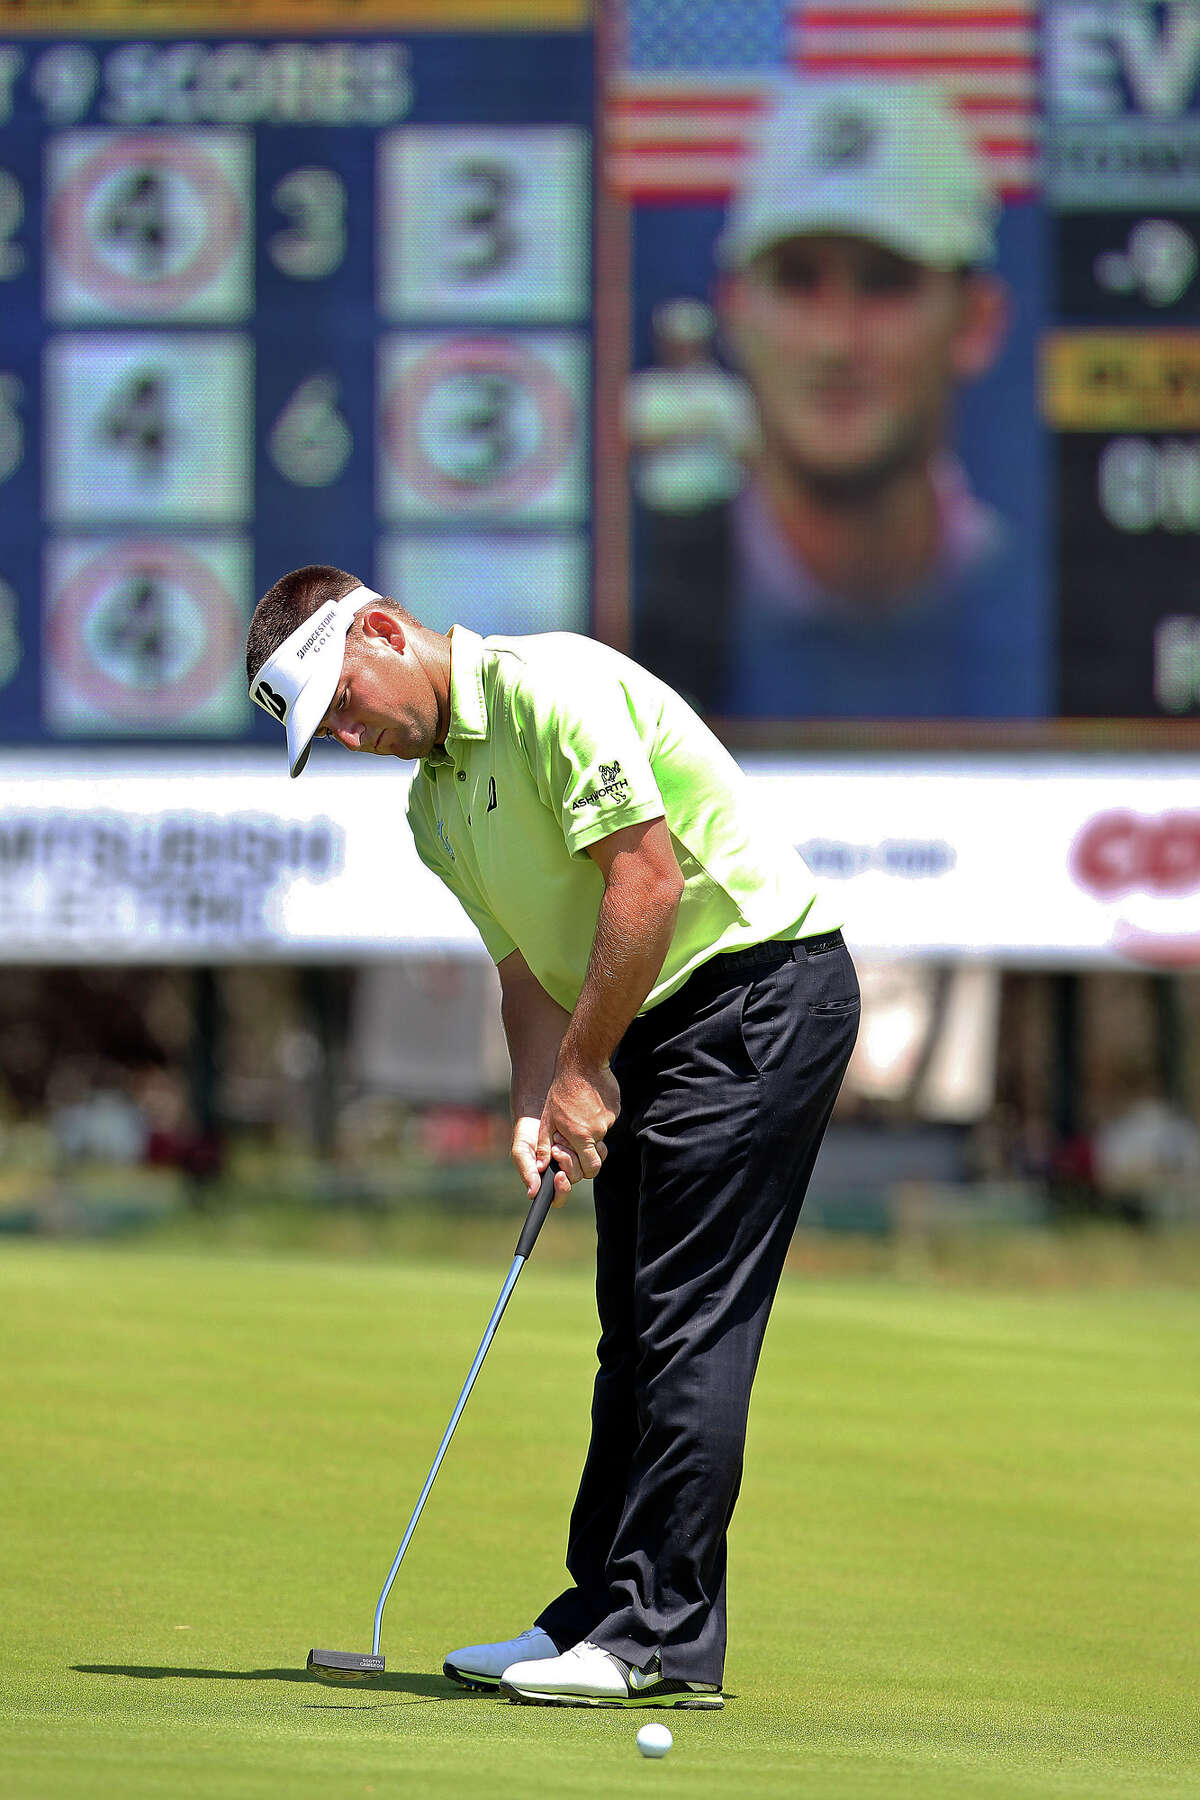 Matt Every putts on No. 9 during the first round of the Valero Texas Open on Thursday. The 2009 Nationwide Tour Champion had to putt just 23 times on the arduous AT&T Oaks Course.